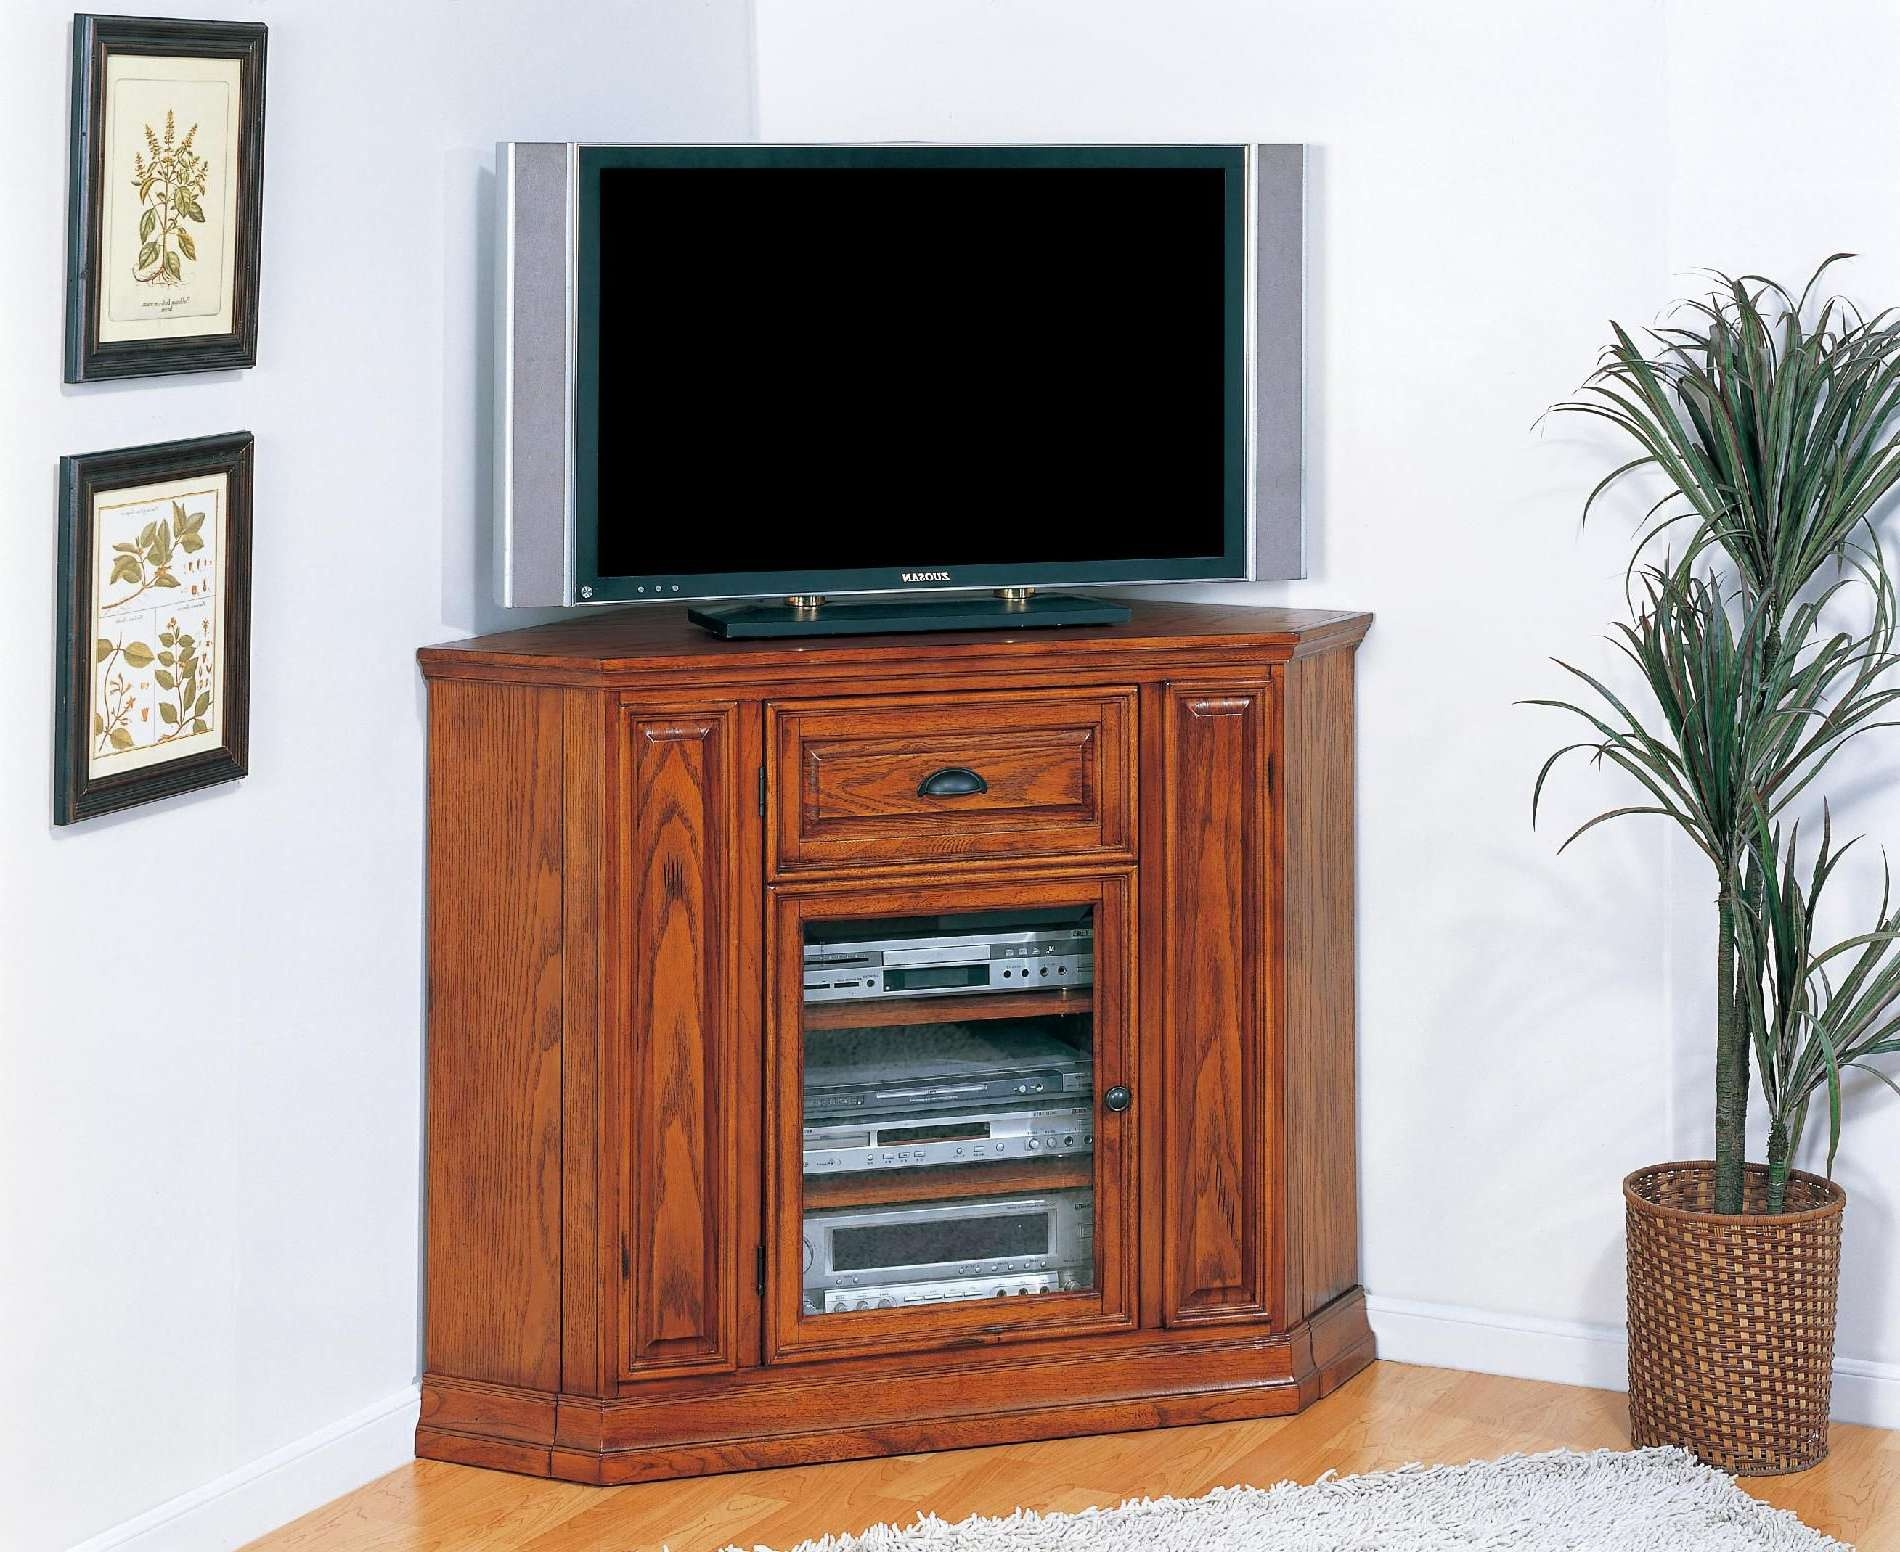 Tv Stand : Tall Narrow Tv Stands For Flat Screens And Standstall Regarding Corner Tv Stands With Drawers (View 6 of 15)